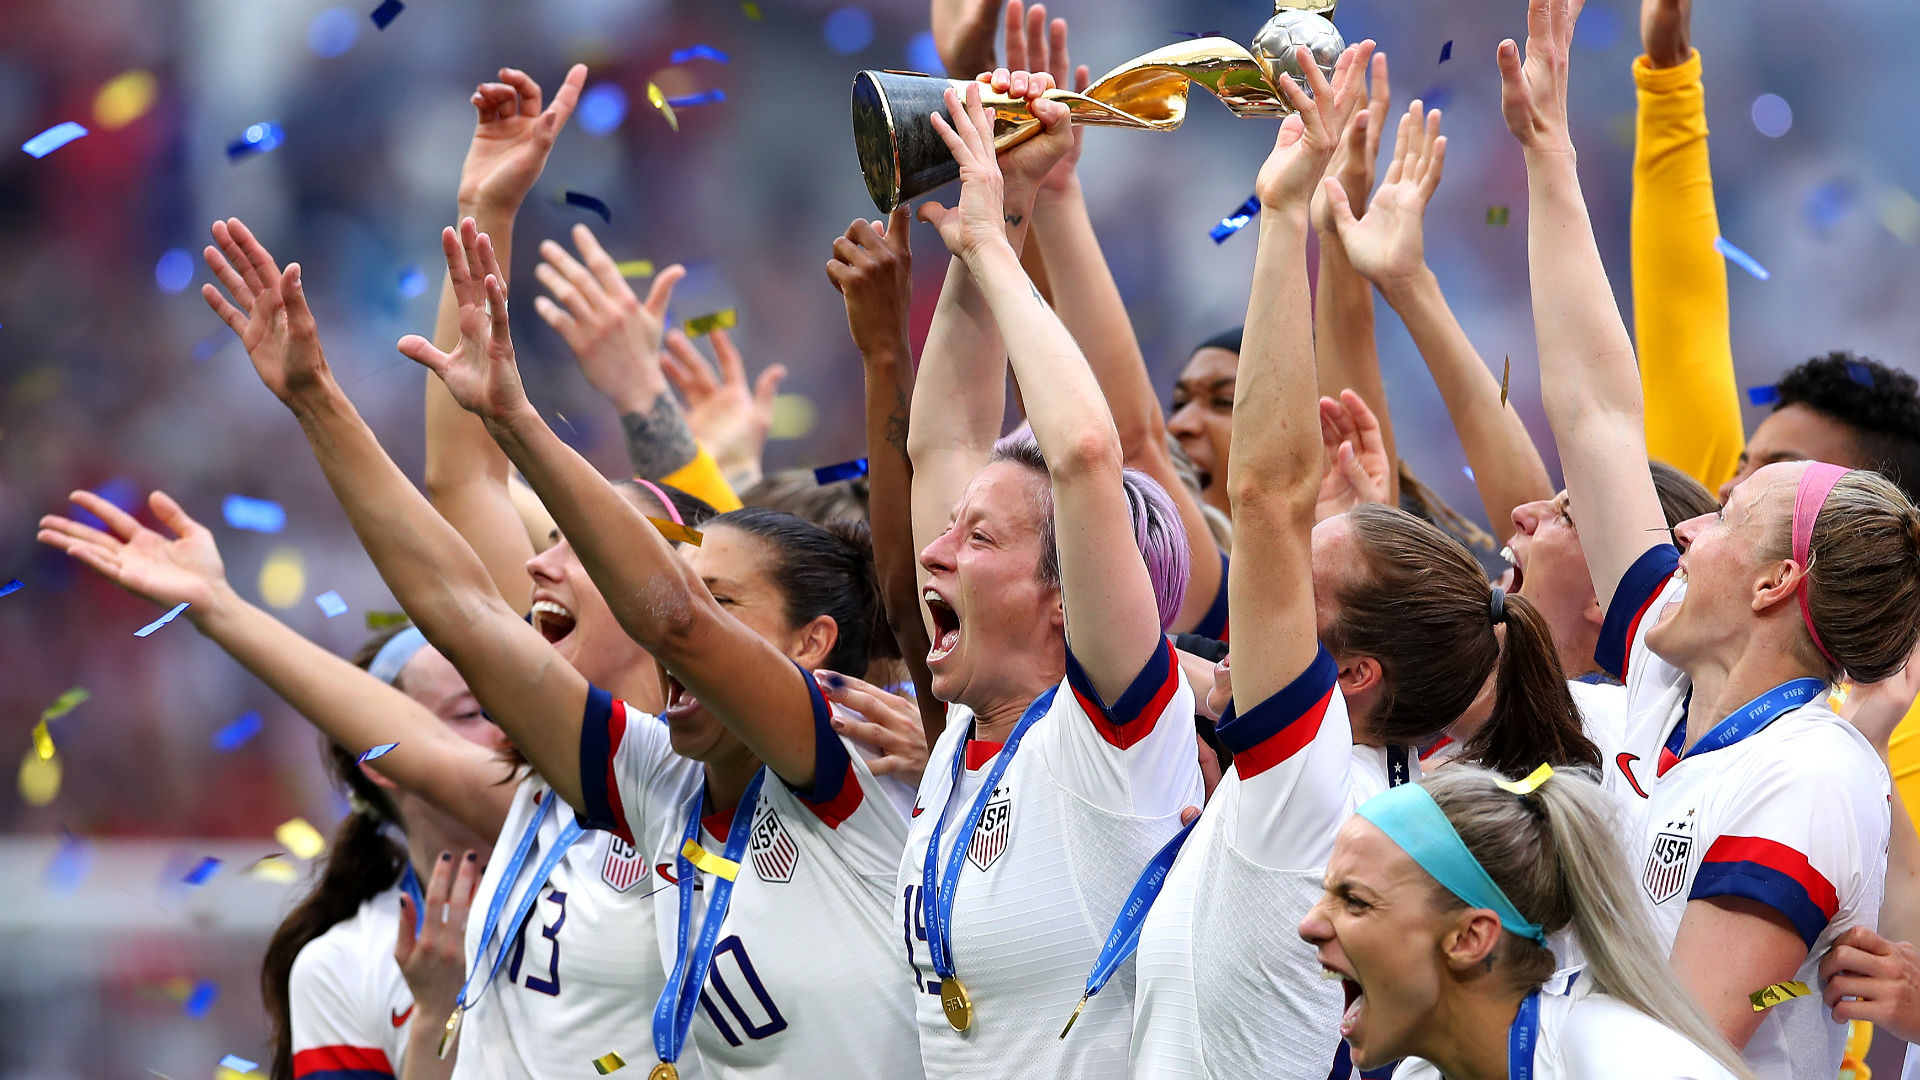 Women's World Cup 2019: 5 things we learned from USWNT's historic title run